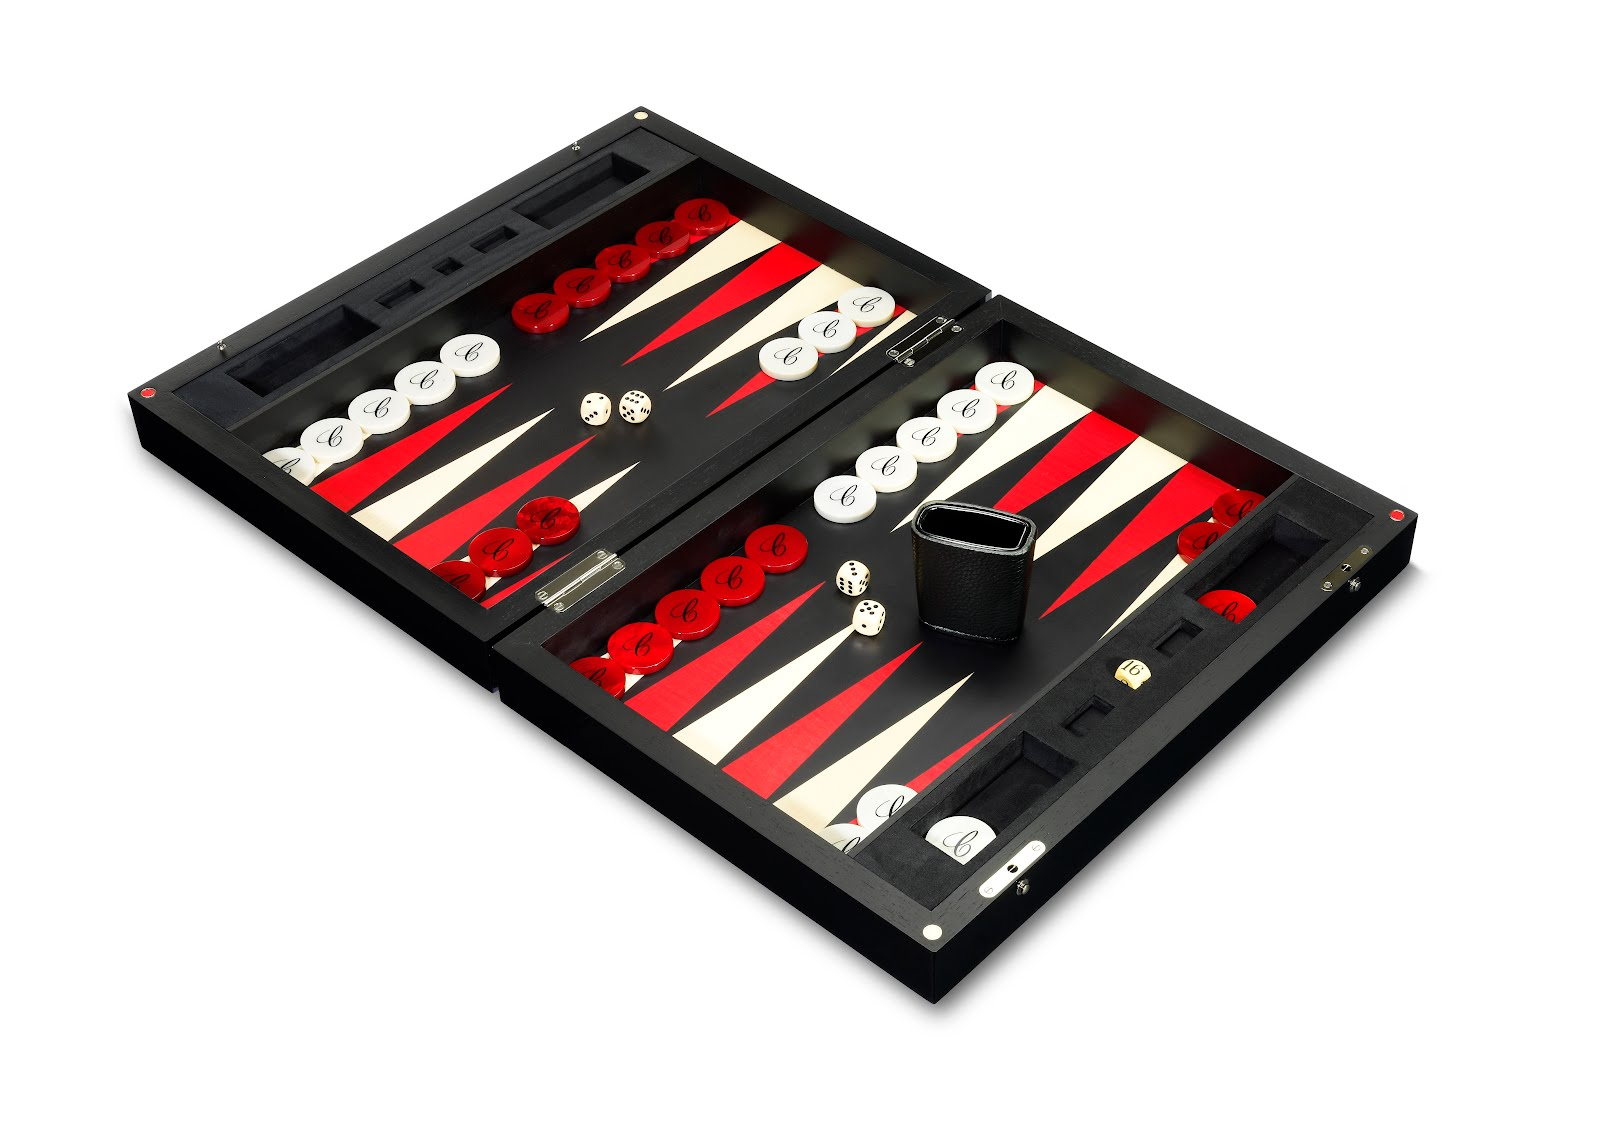 El Backgammon de Chopard